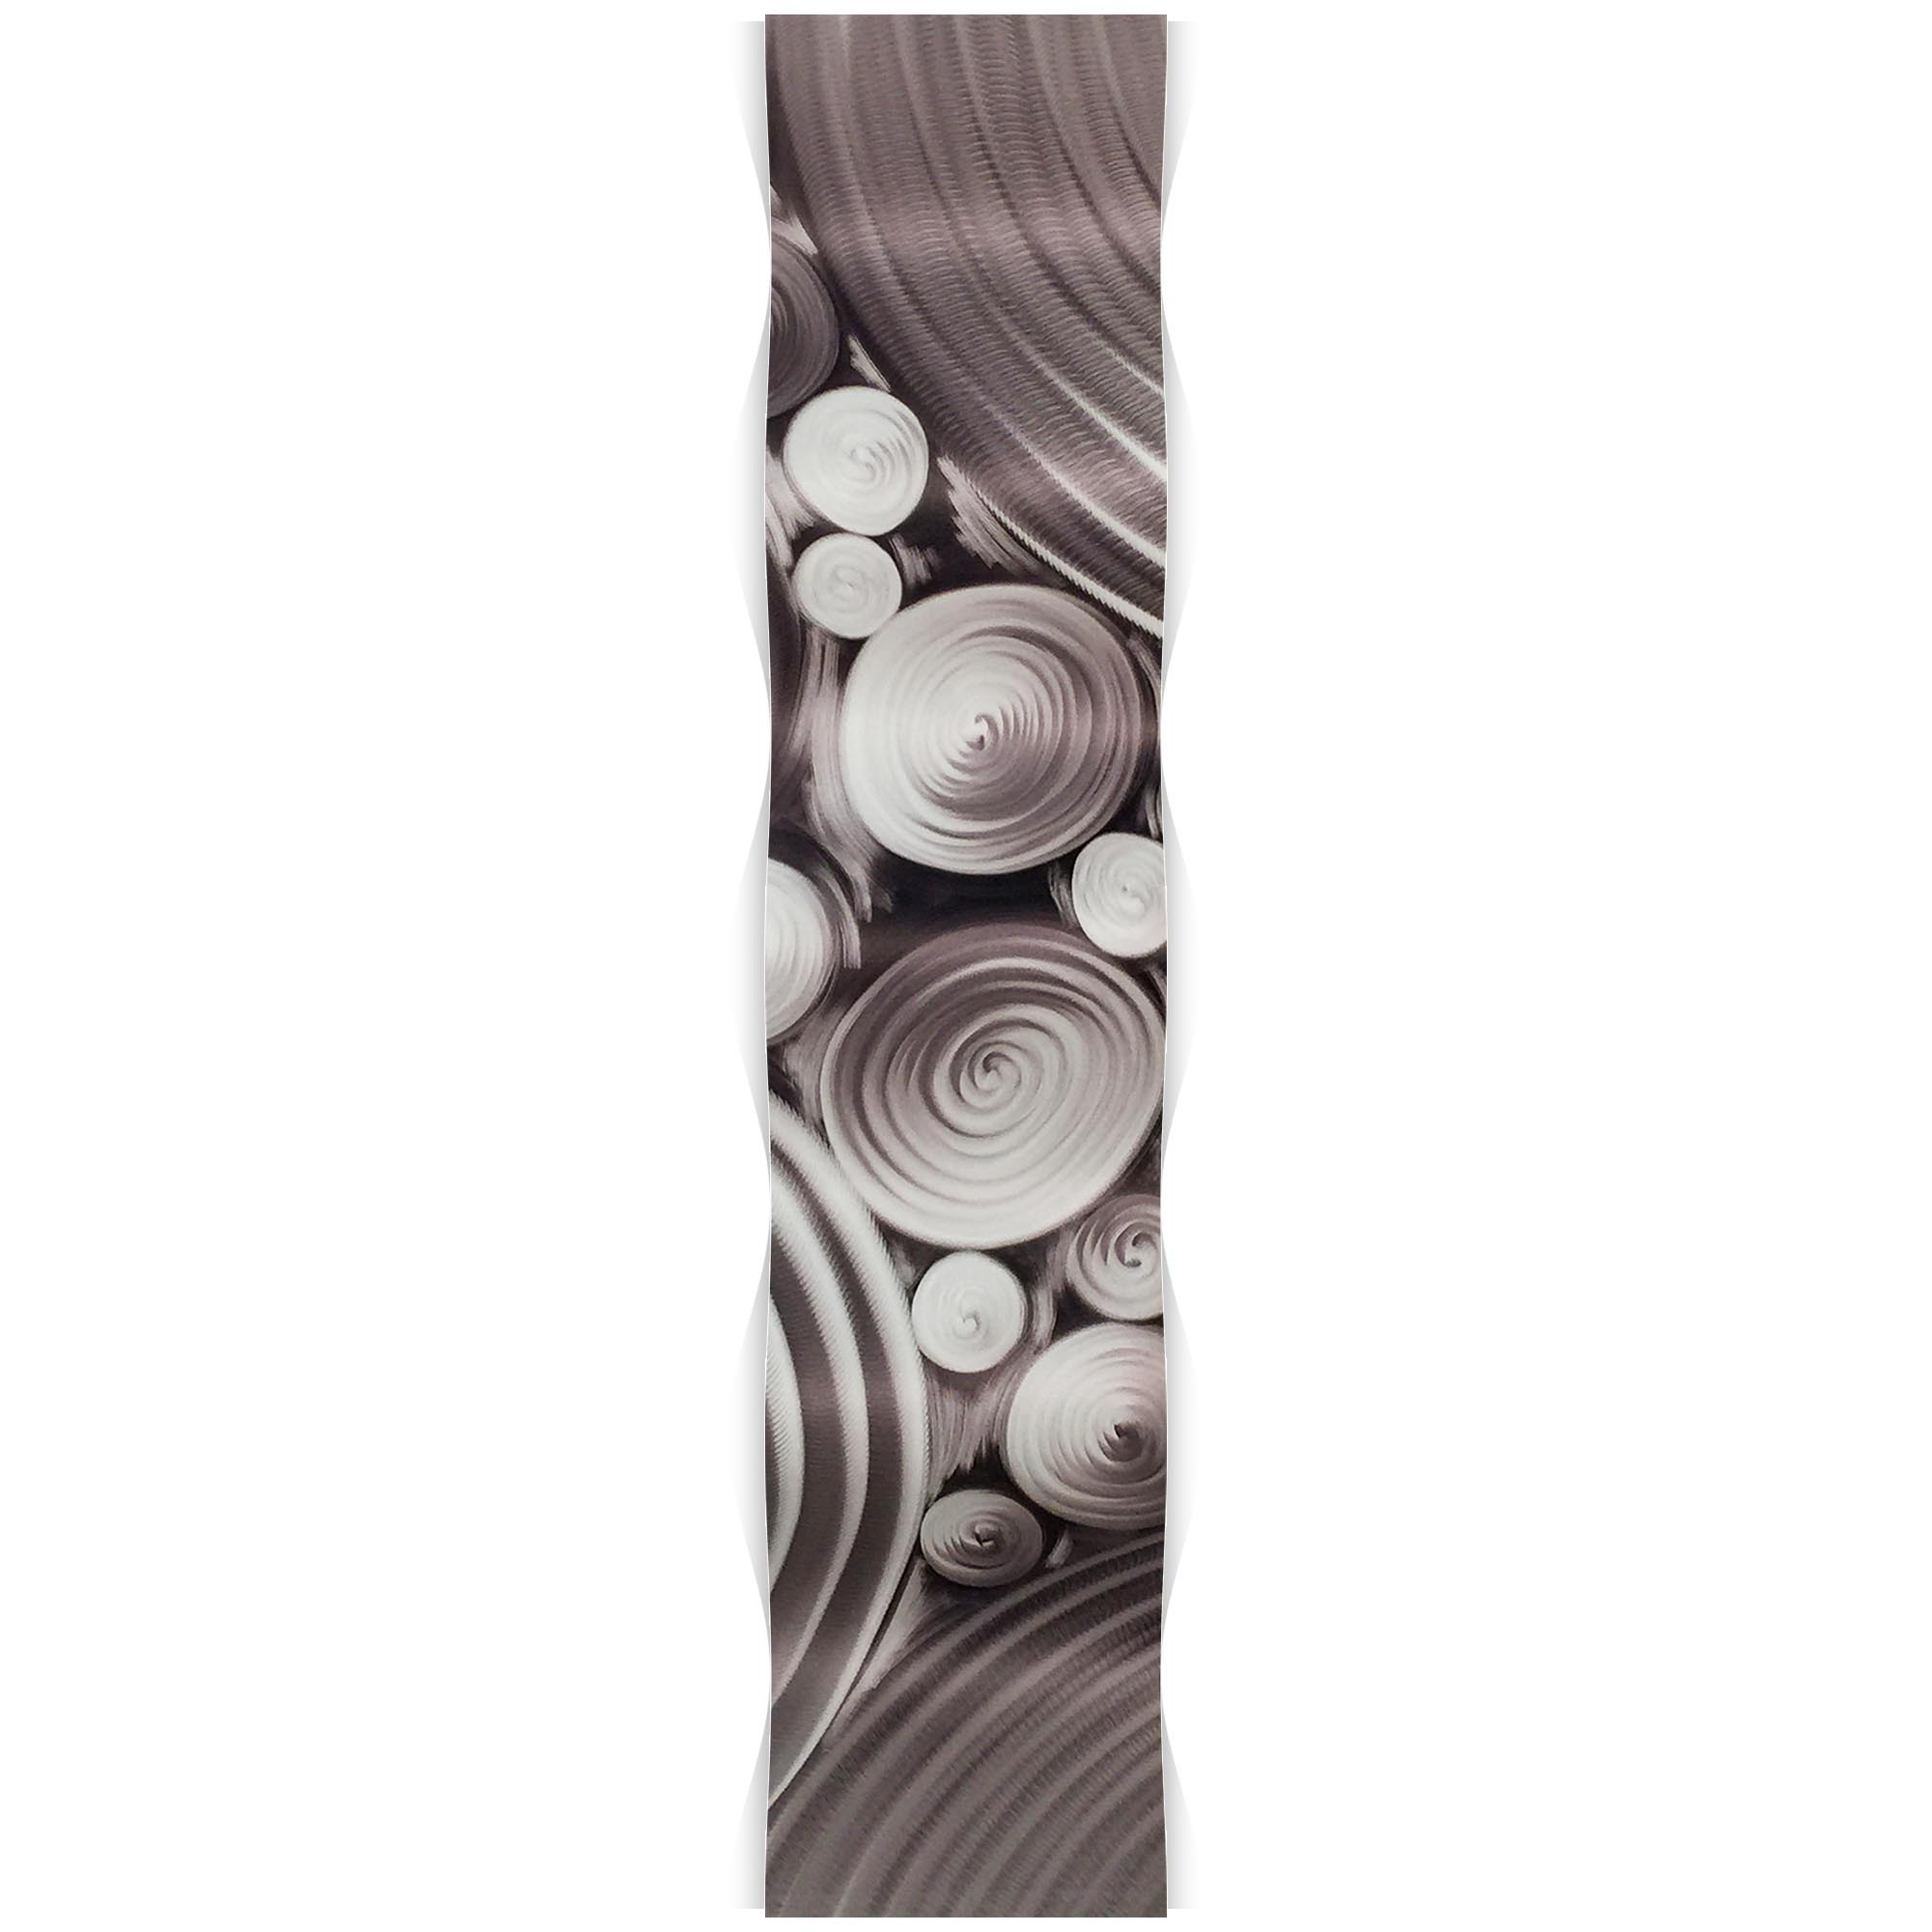 Interdiffusion Wave 9.5x44in. Metal Eclectic Decor - Image 2